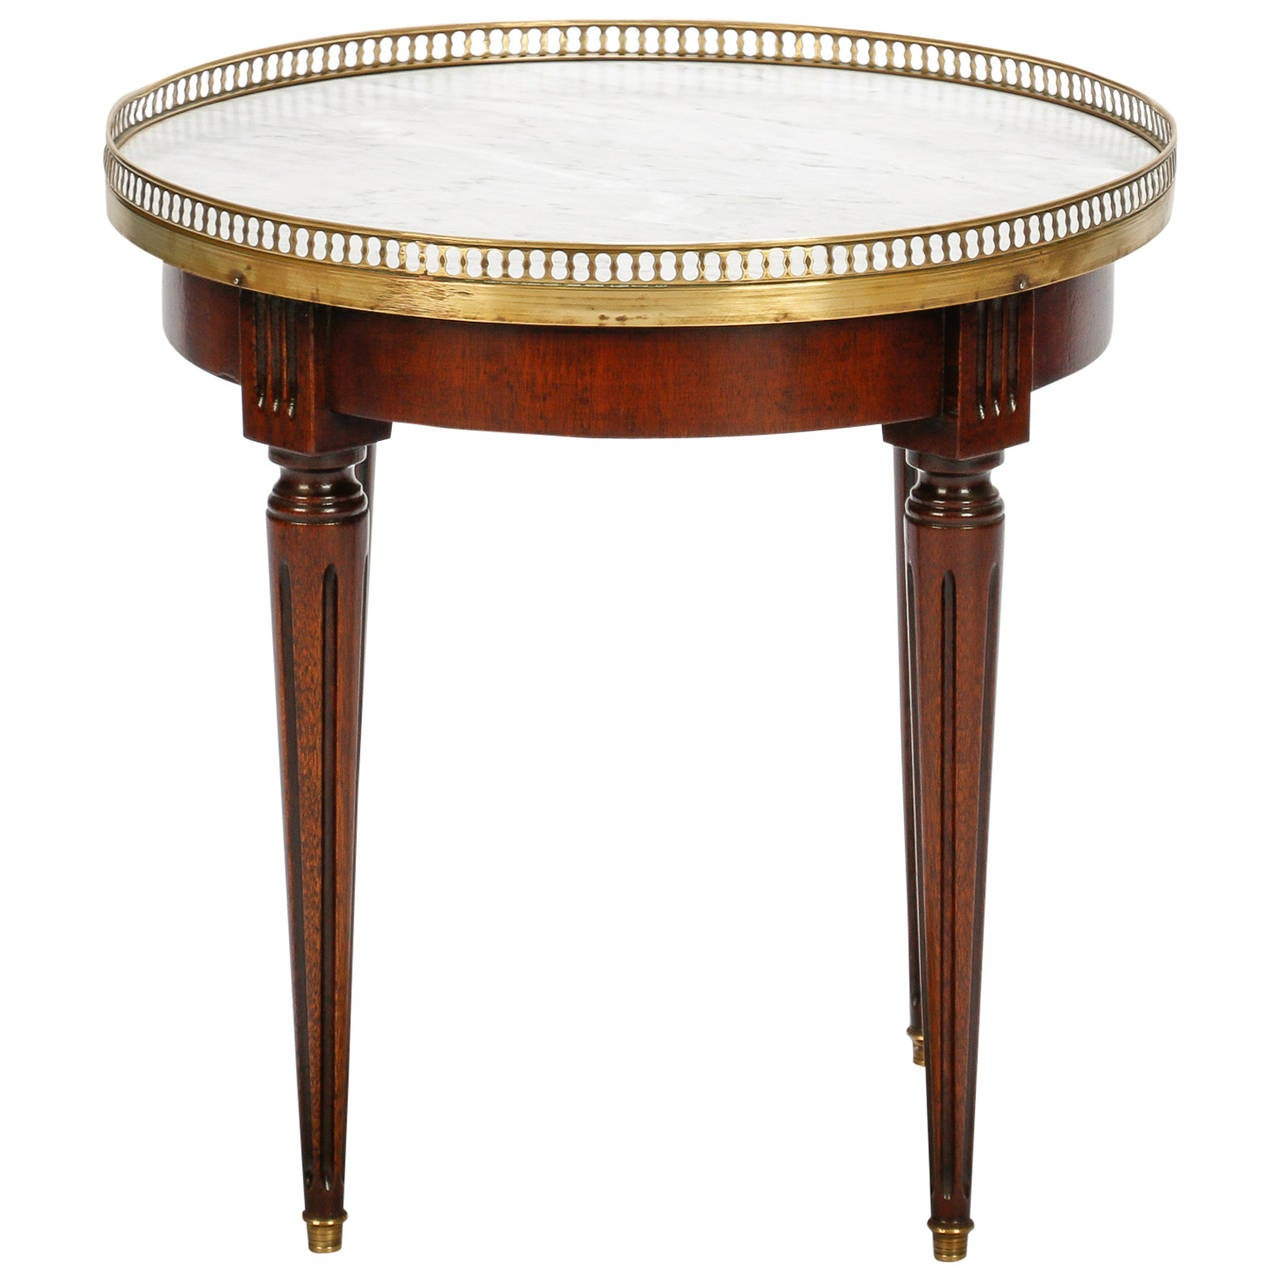 Small round wood side table with brass gallery and white